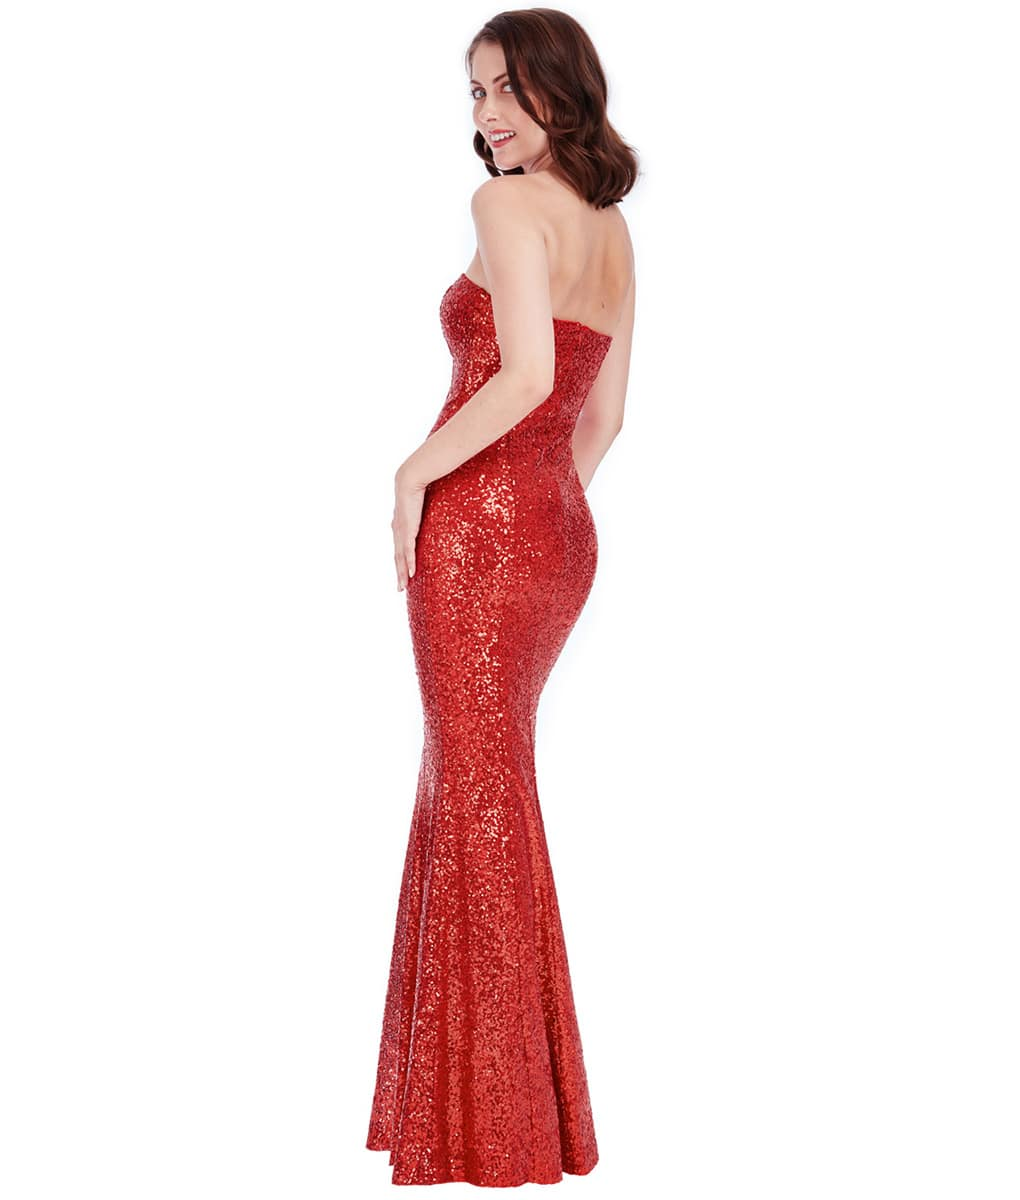 Alila-Red-Sequin-Strapless-debs-dress-back-City-Goddess